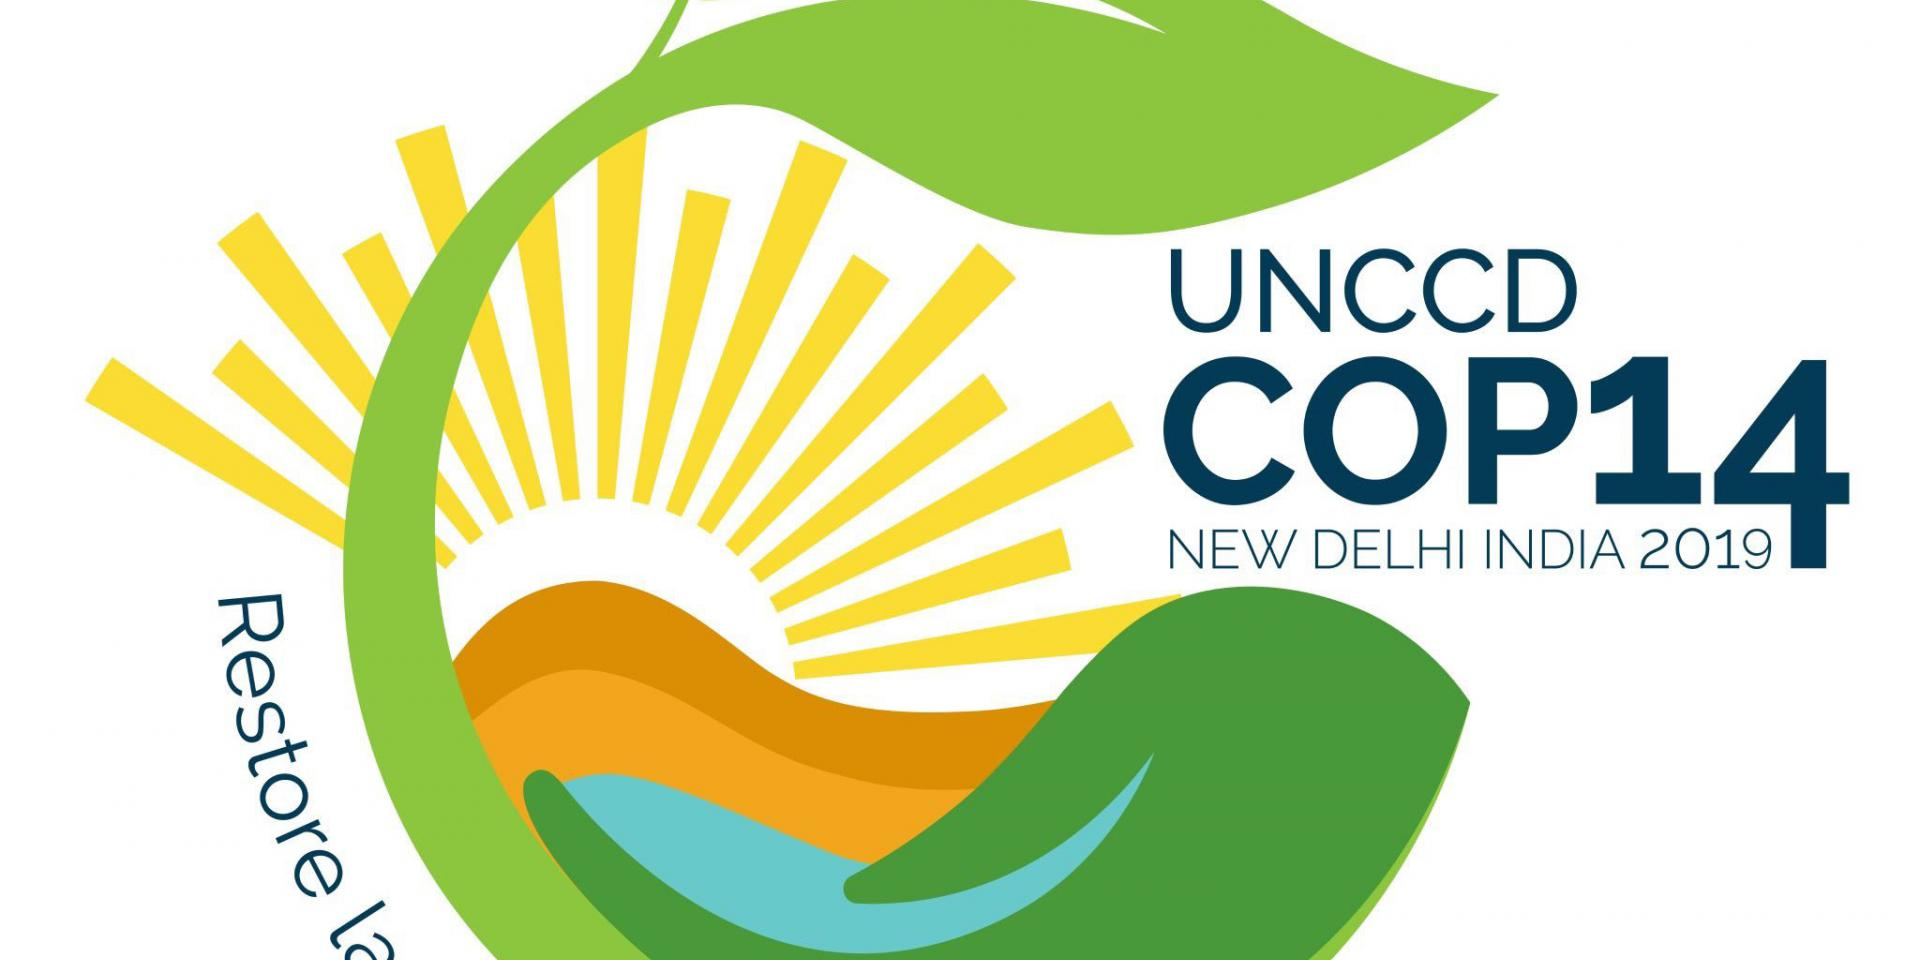 UNCCD COP14 New Delhi, India 2019